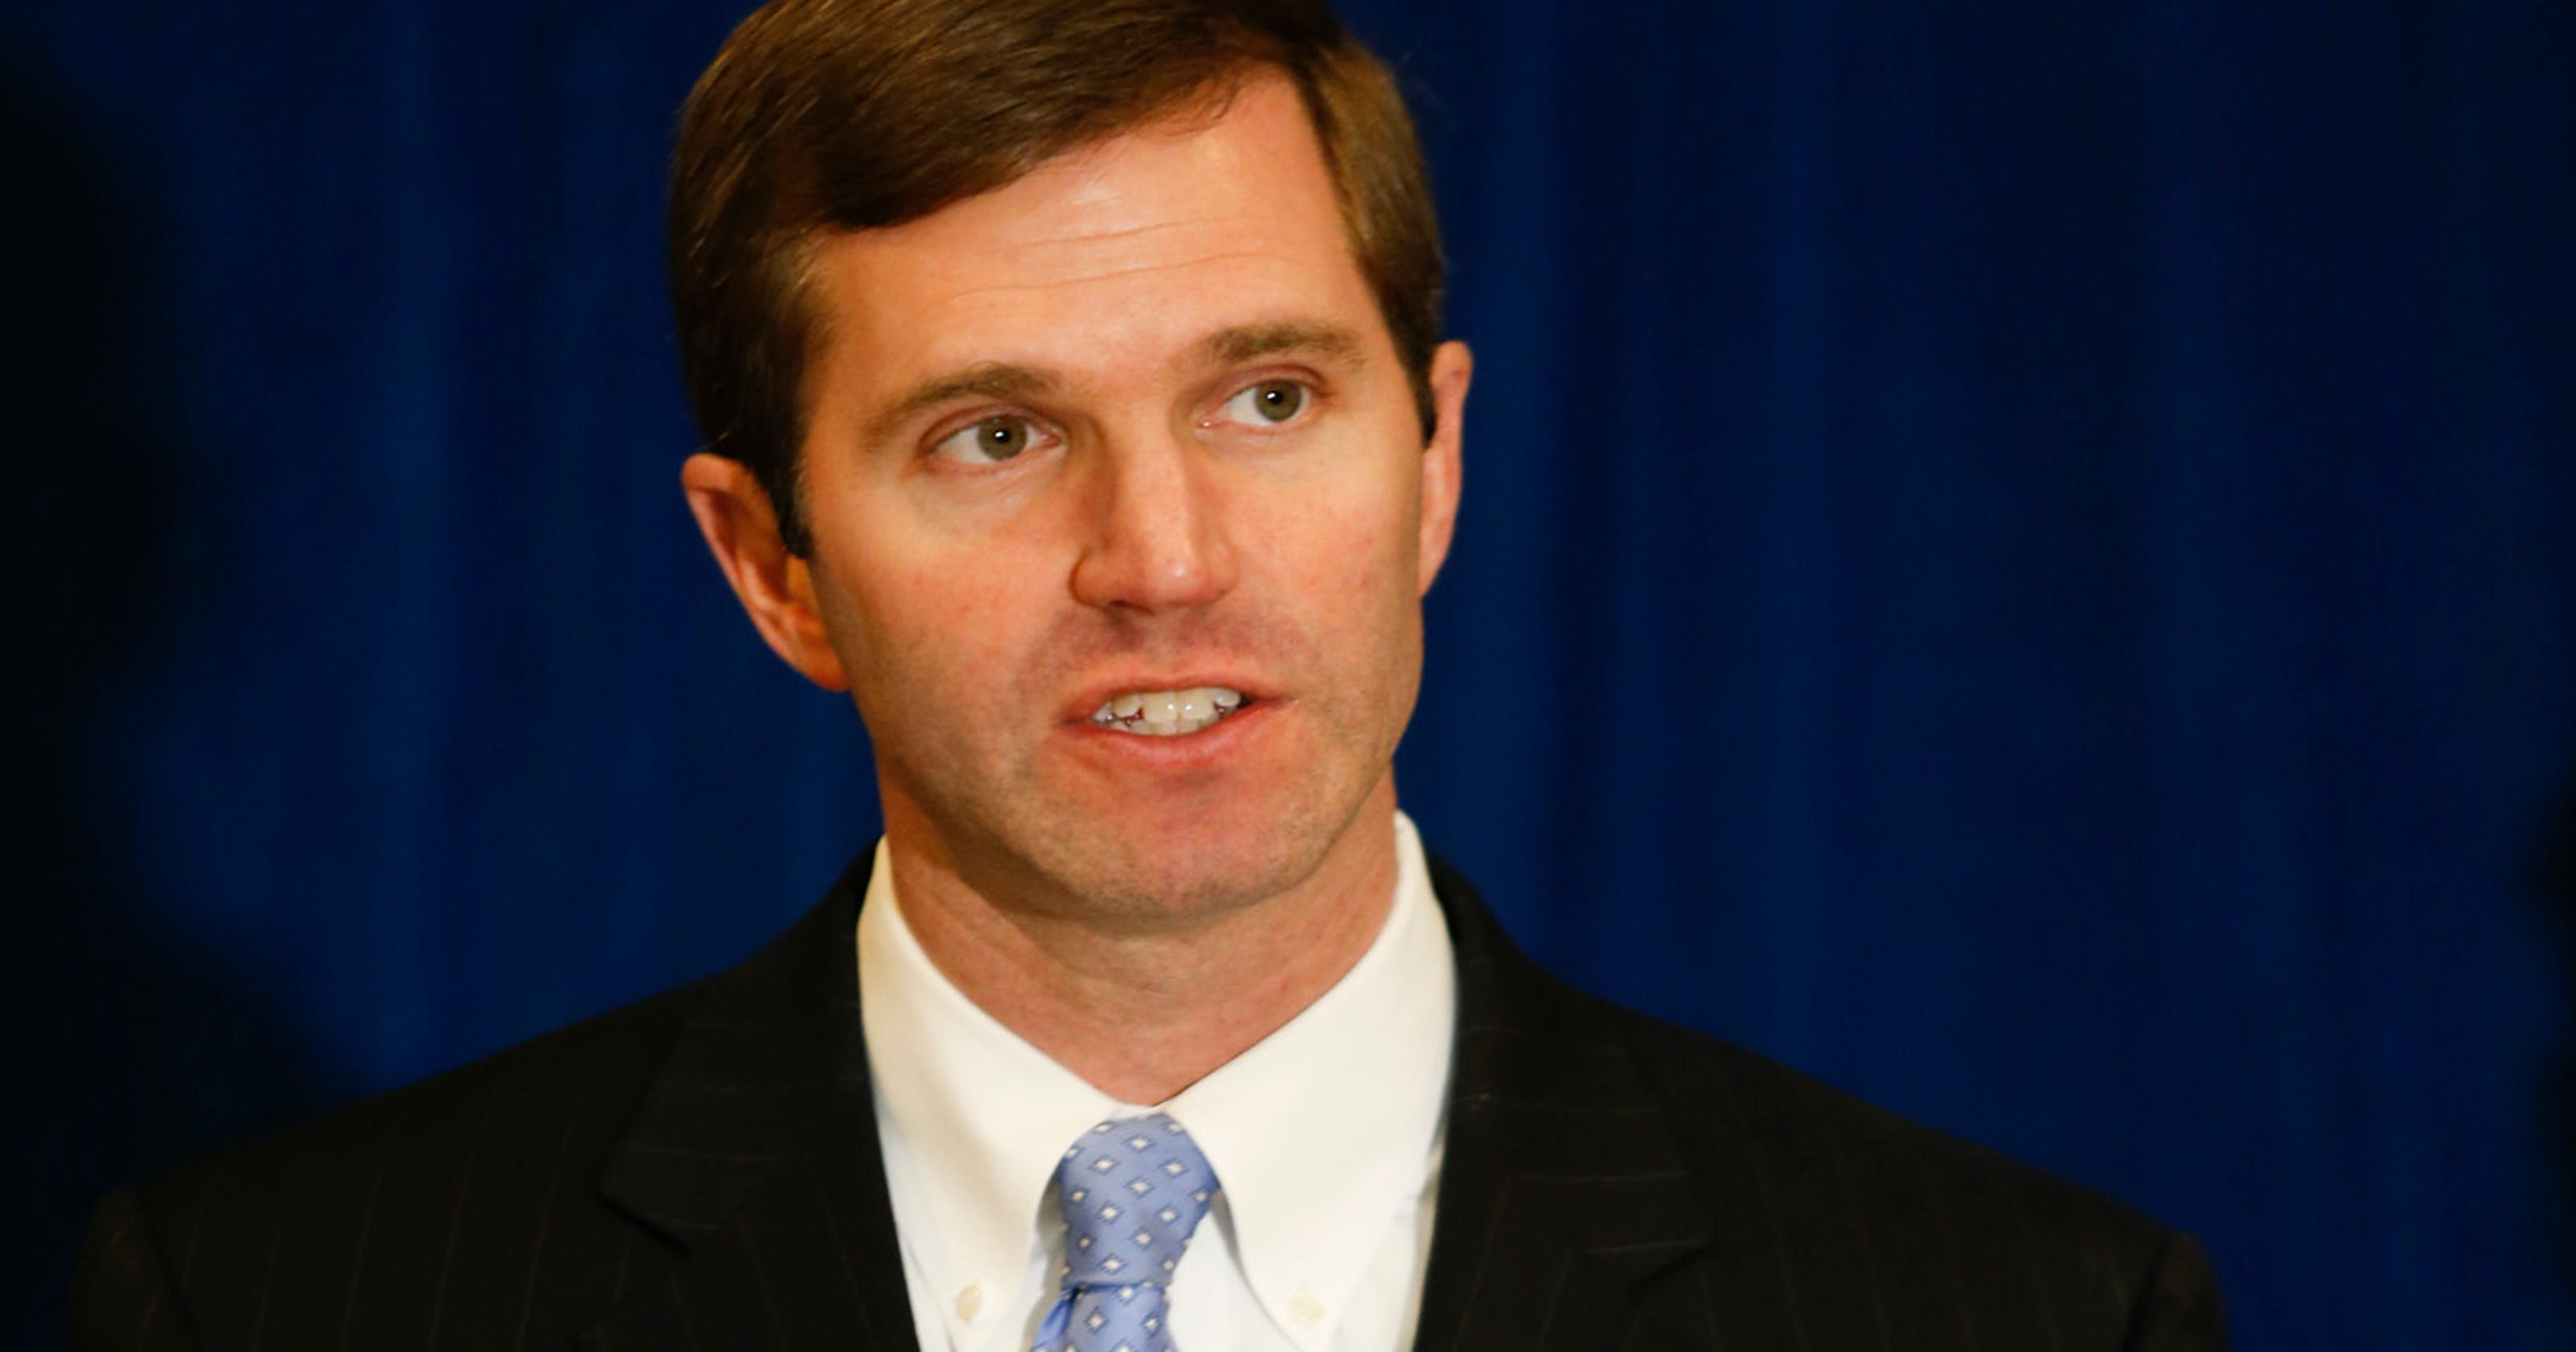 andy beshear - photo #26